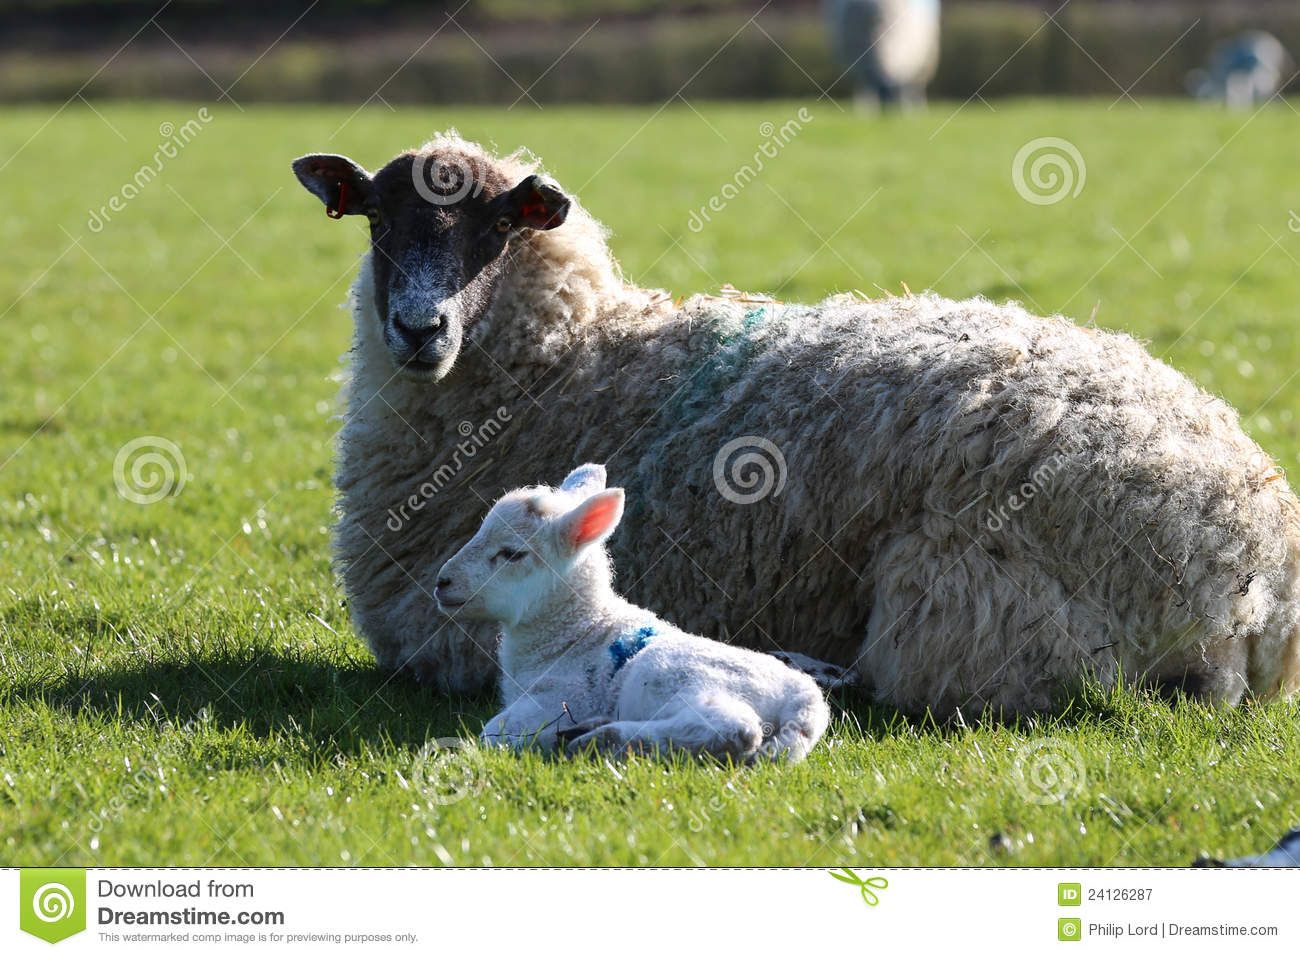 Ewe sheep with lamp stock image  Image of grass, meadow